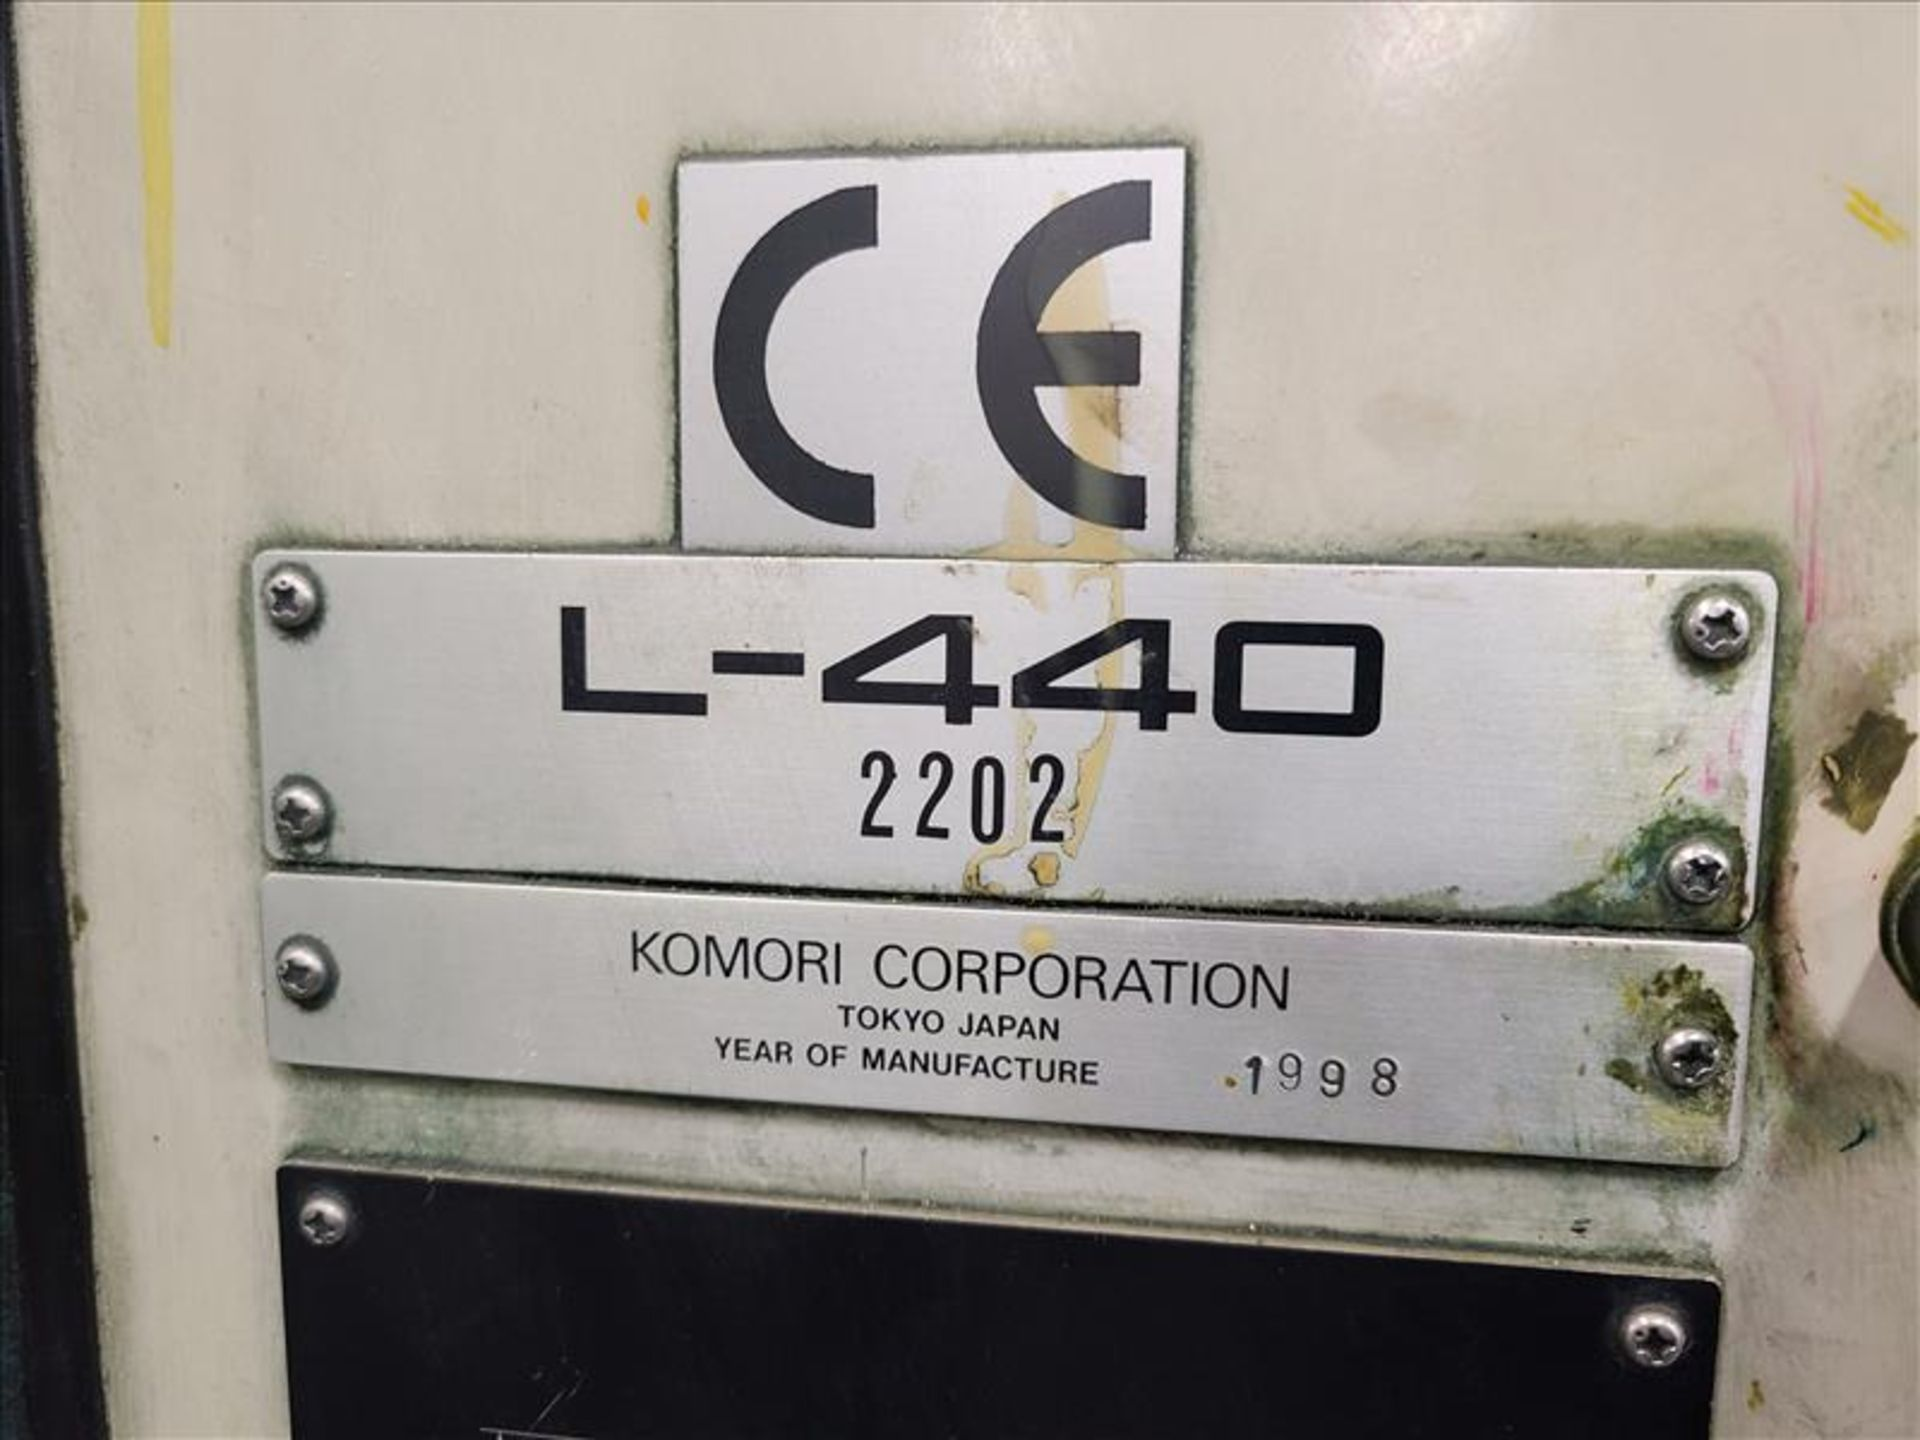 Komori 4-color offset printing press, Series Lithrone 40, model L-440, S/N.2202 approx. 68 - Image 9 of 22